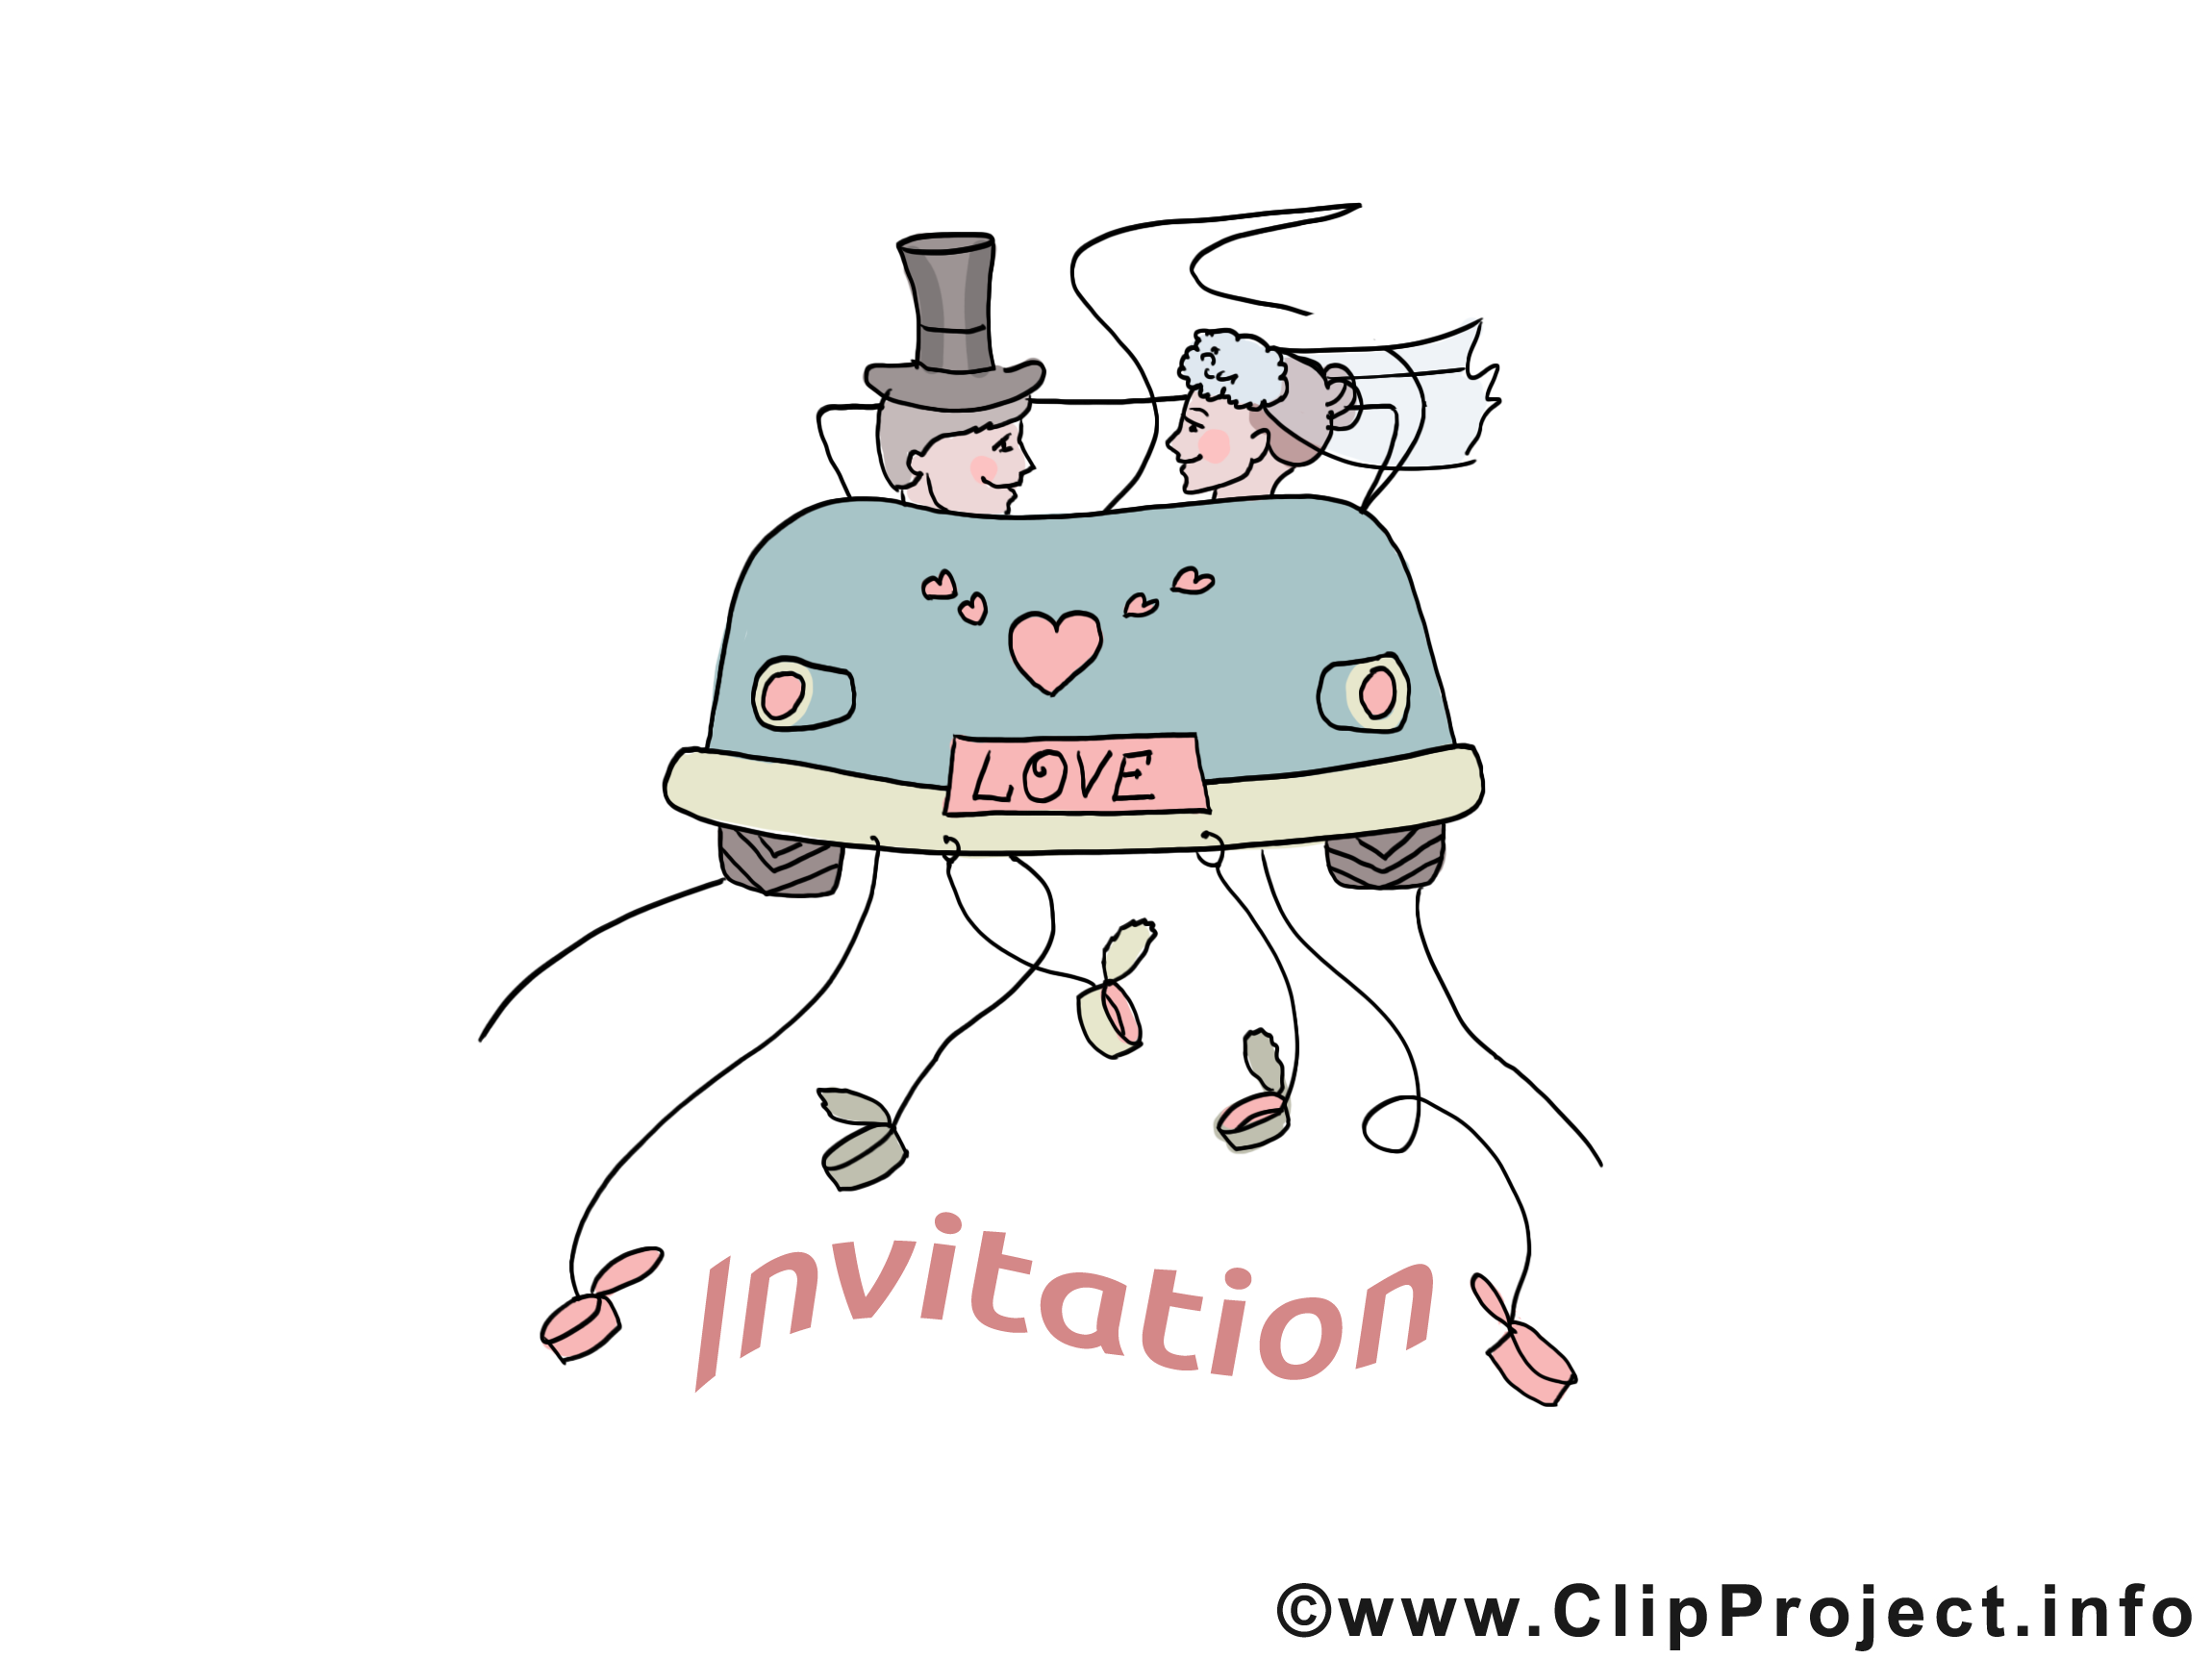 Voiture image - Invitation images cliparts